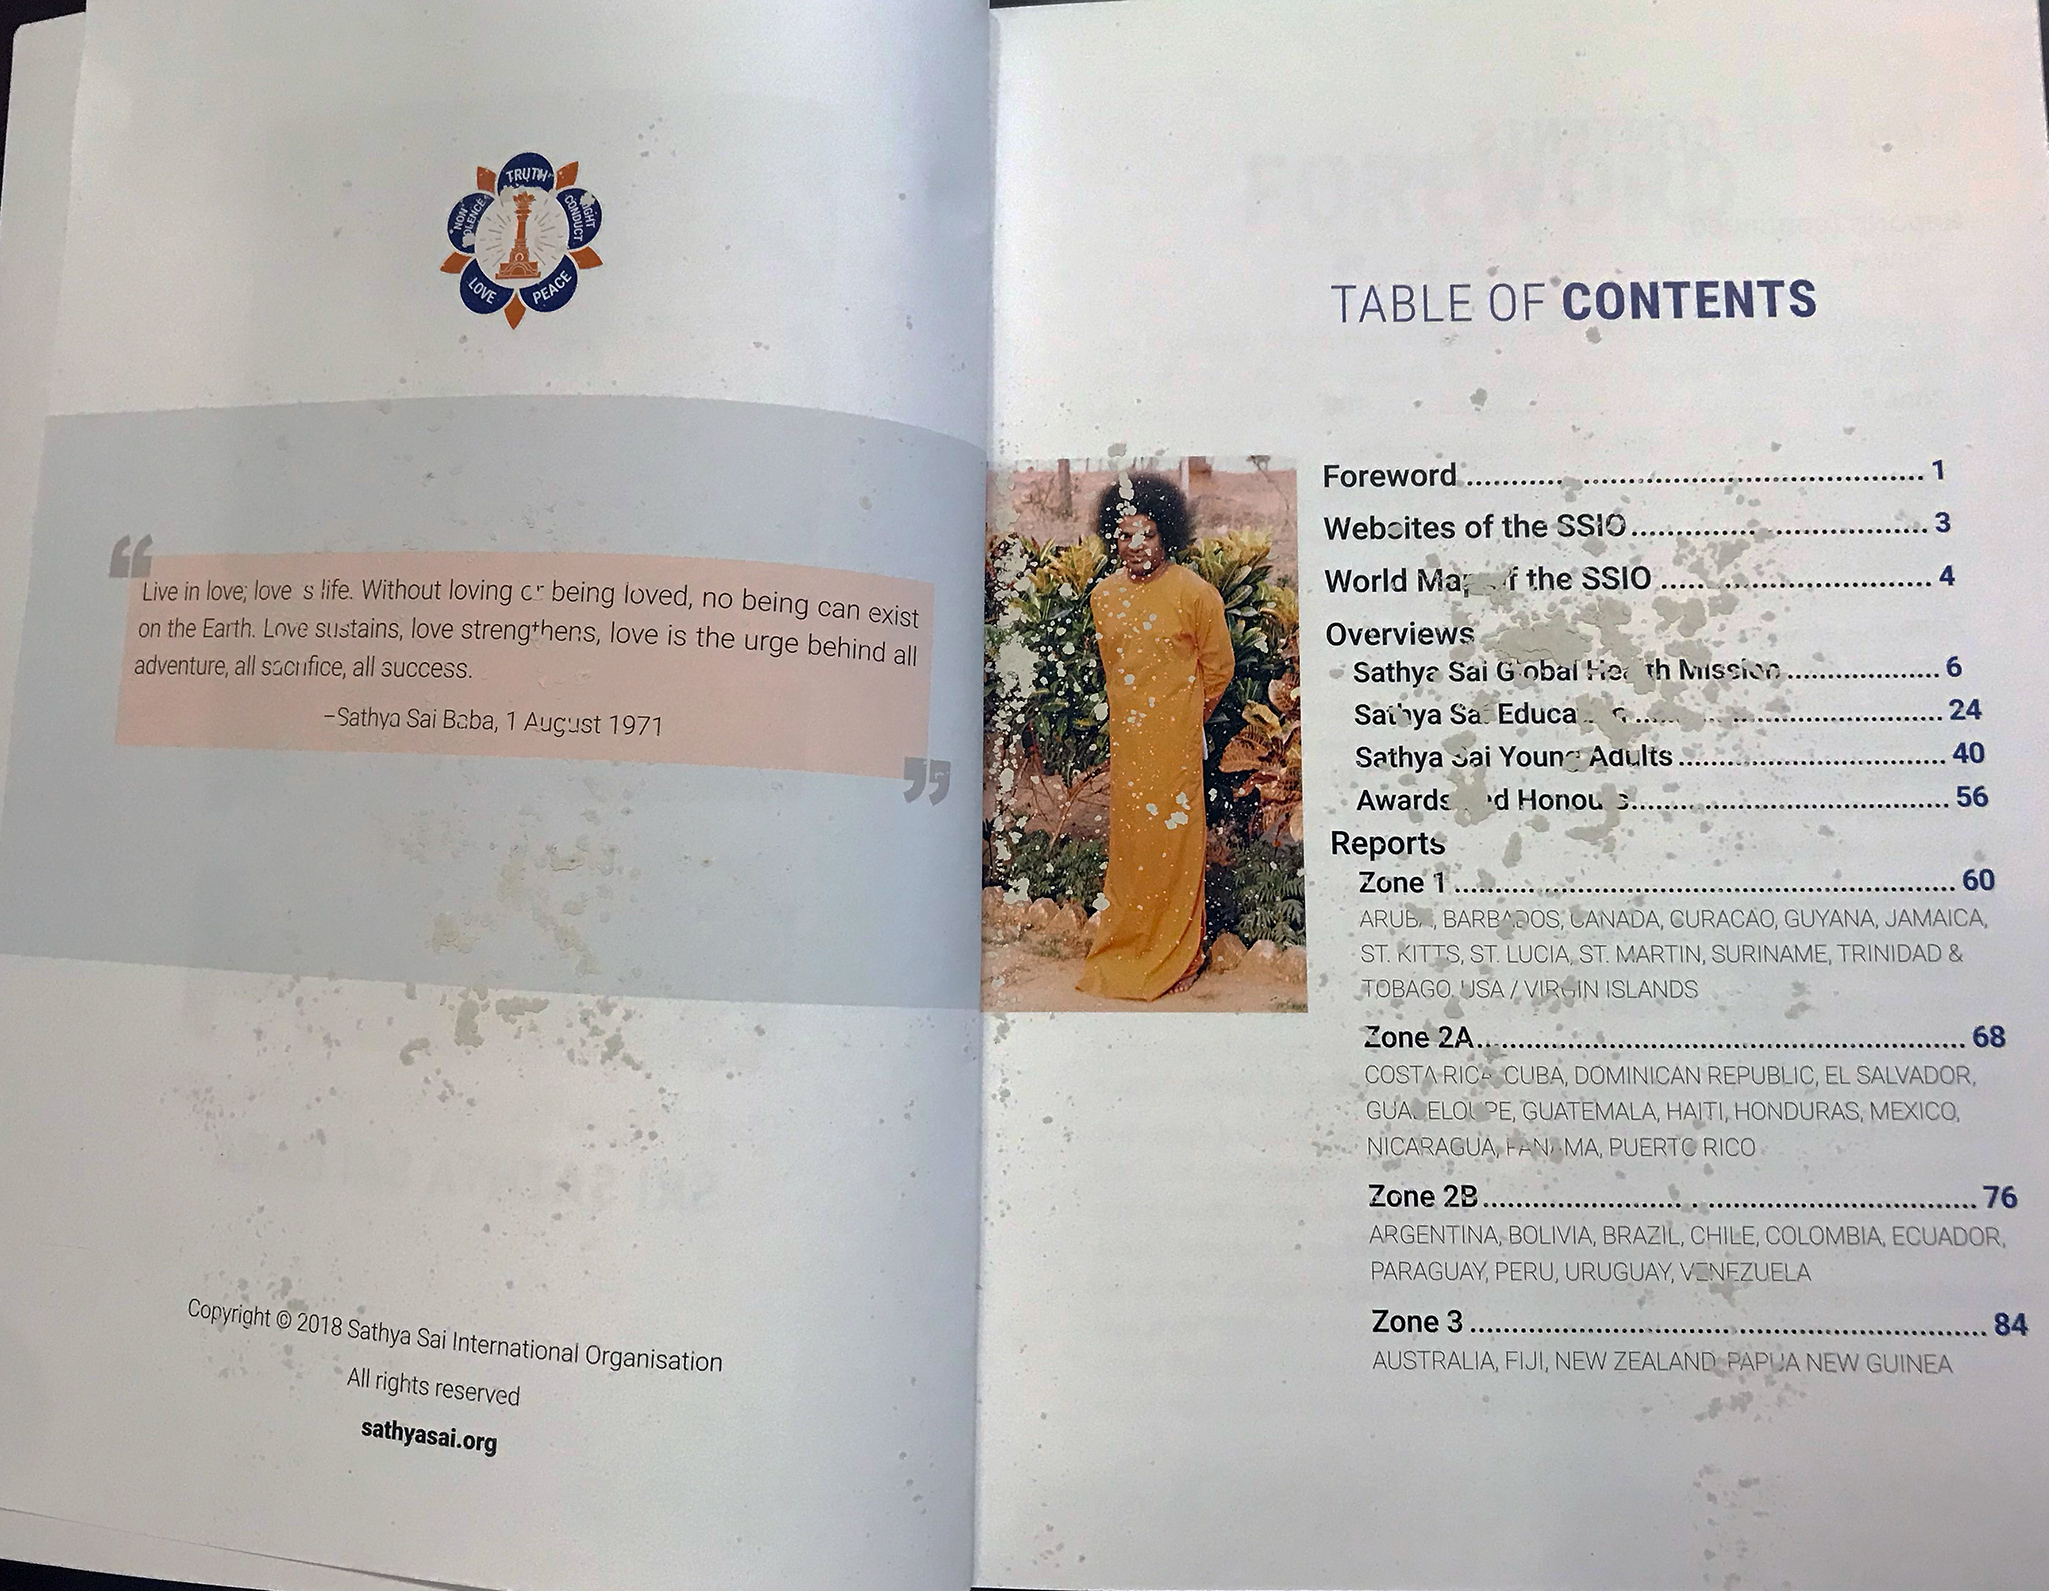 SSIO Annual Report 2017-2018 | Sathya Sai International Organisation